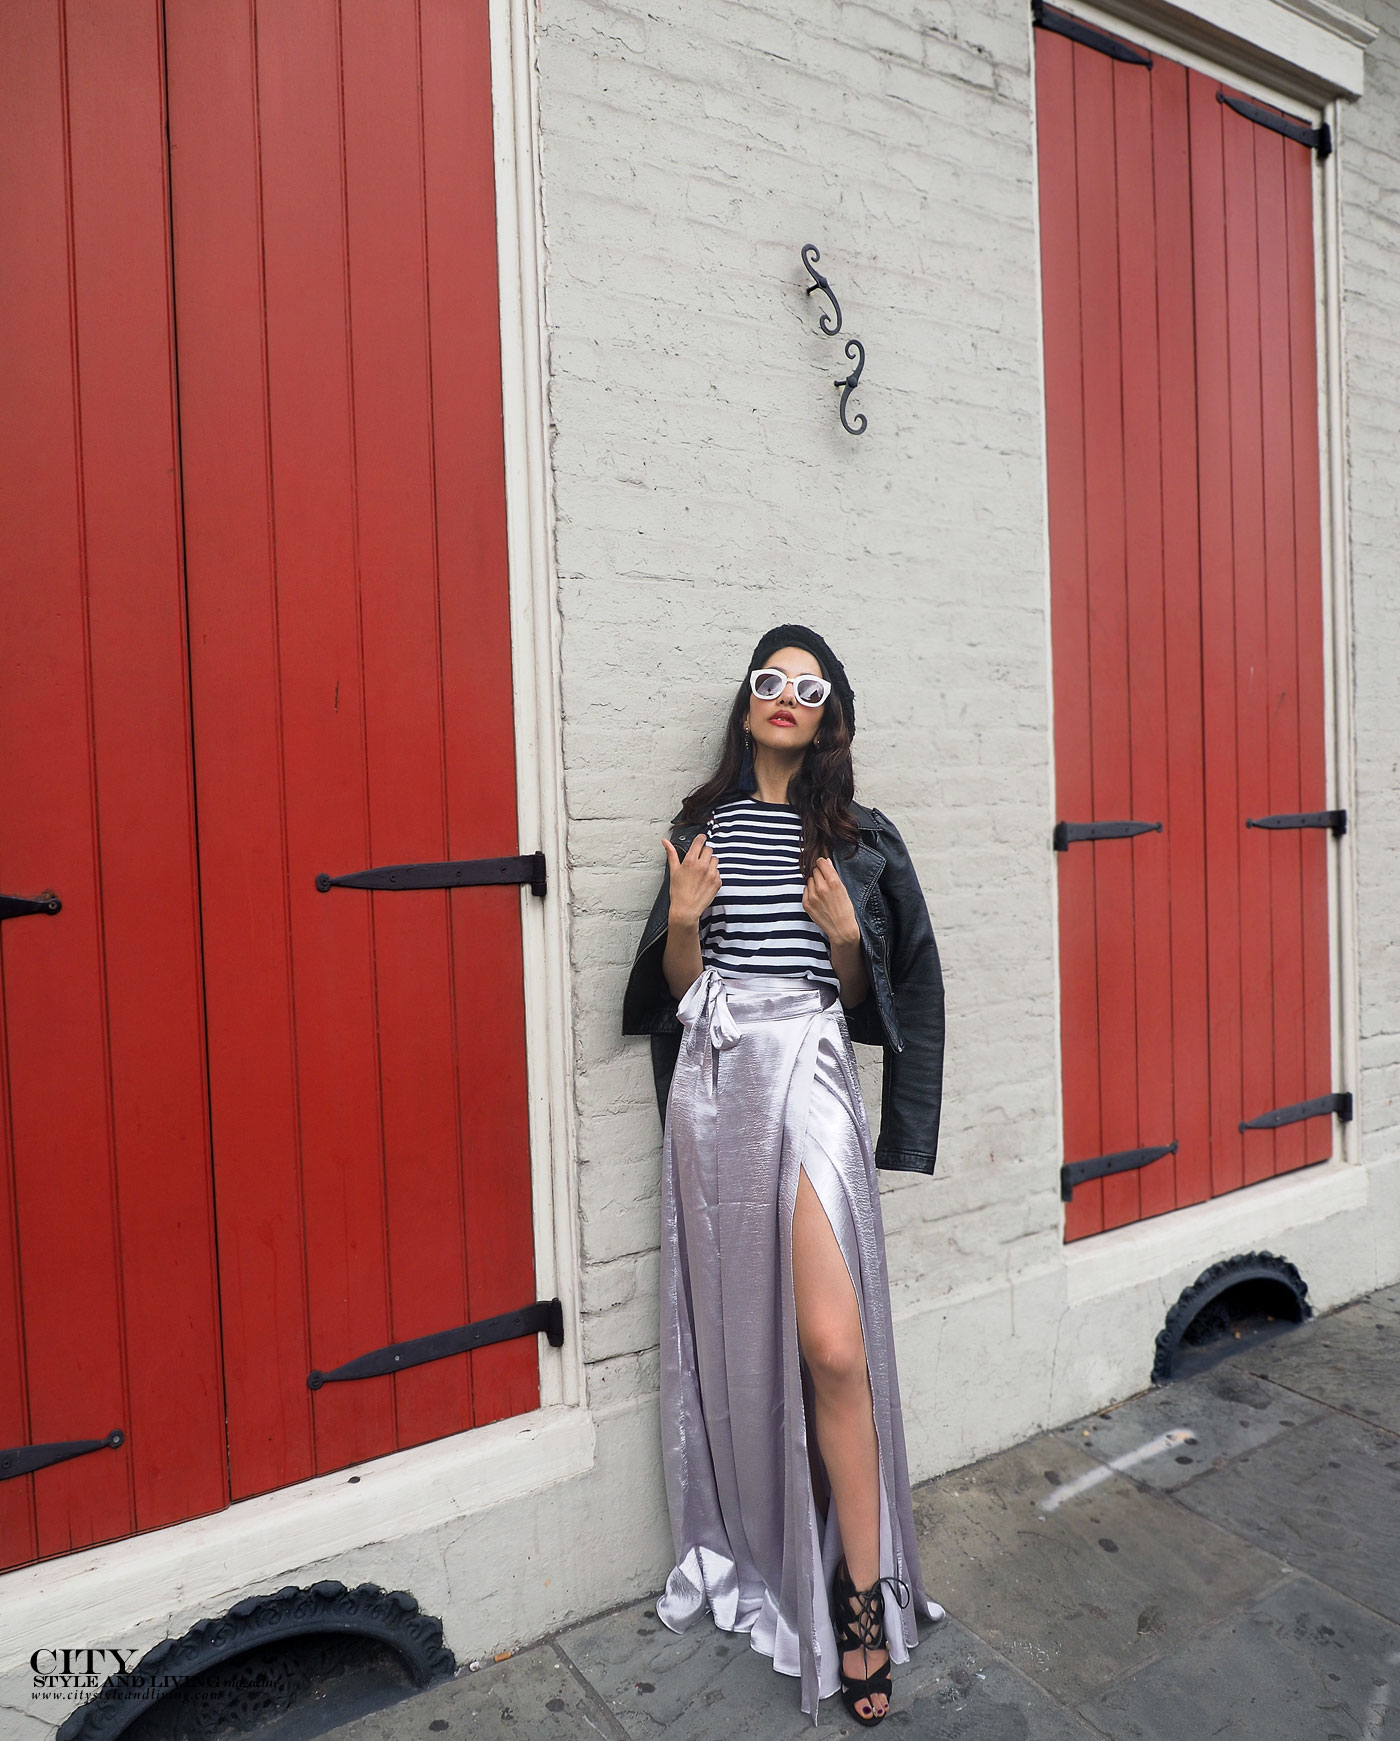 City style and living magazine The Editors Notebook style fashion blogger Shivana Maharaj new orleans french quarter wearing silver skirt french style